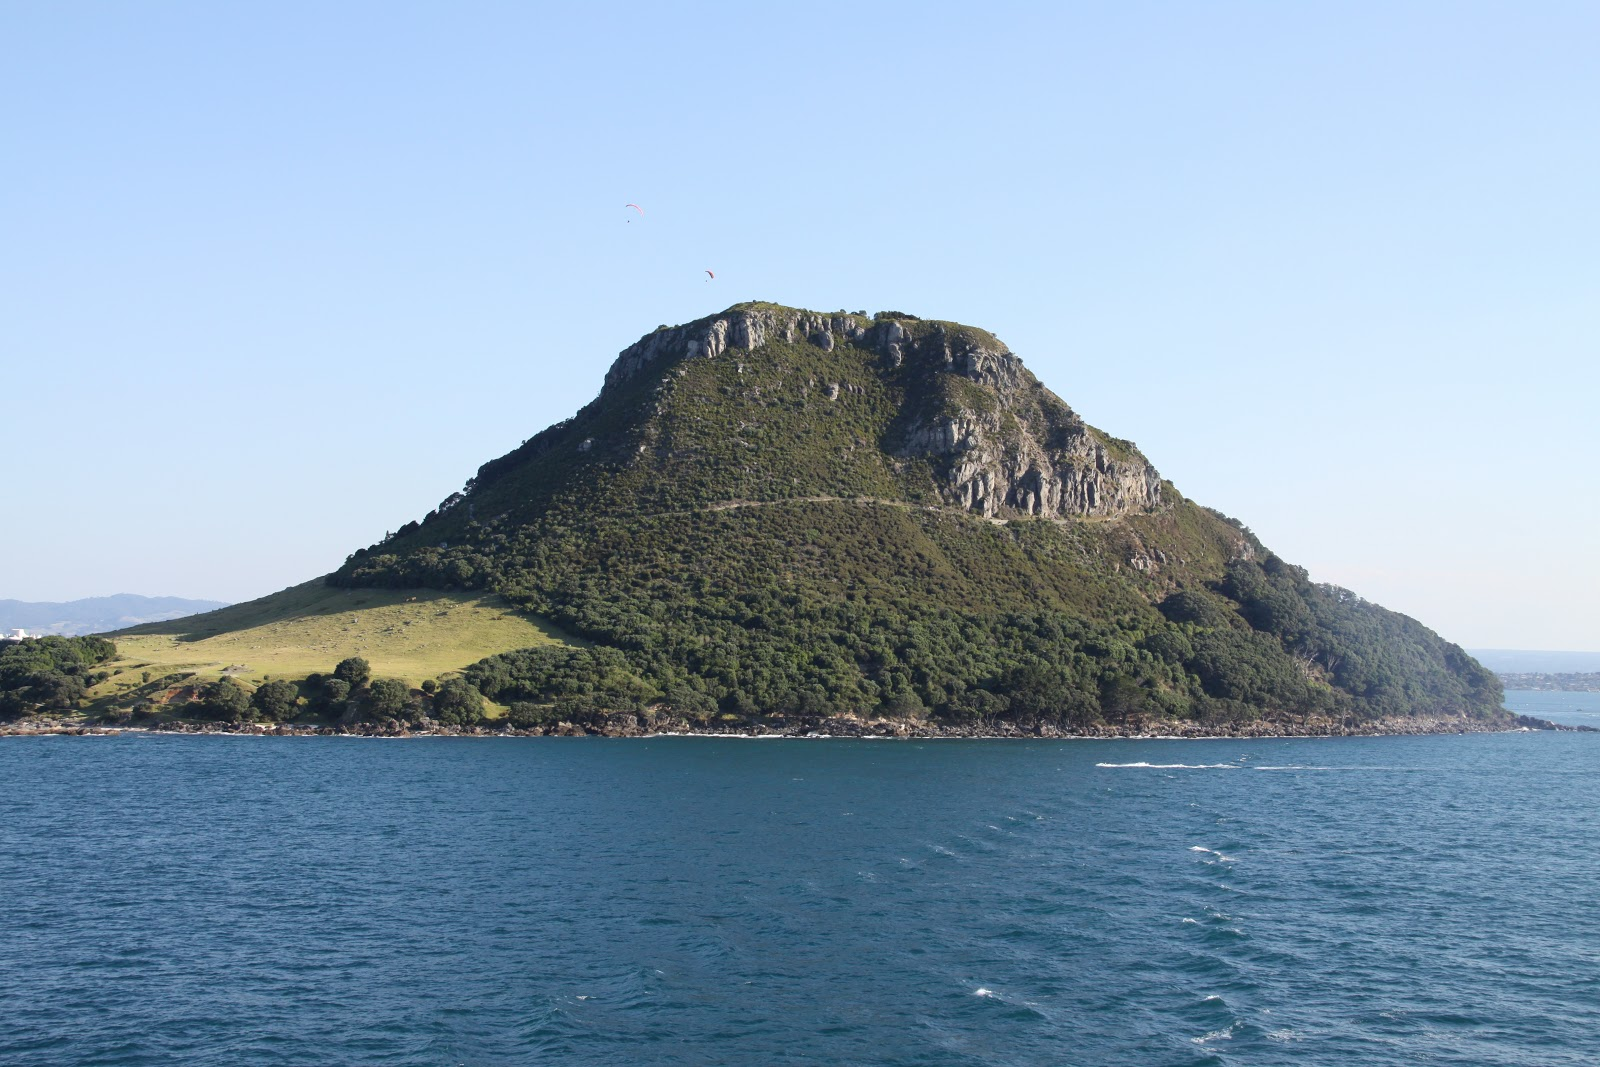 tauranga new zealand taken from the ship. Black Bedroom Furniture Sets. Home Design Ideas